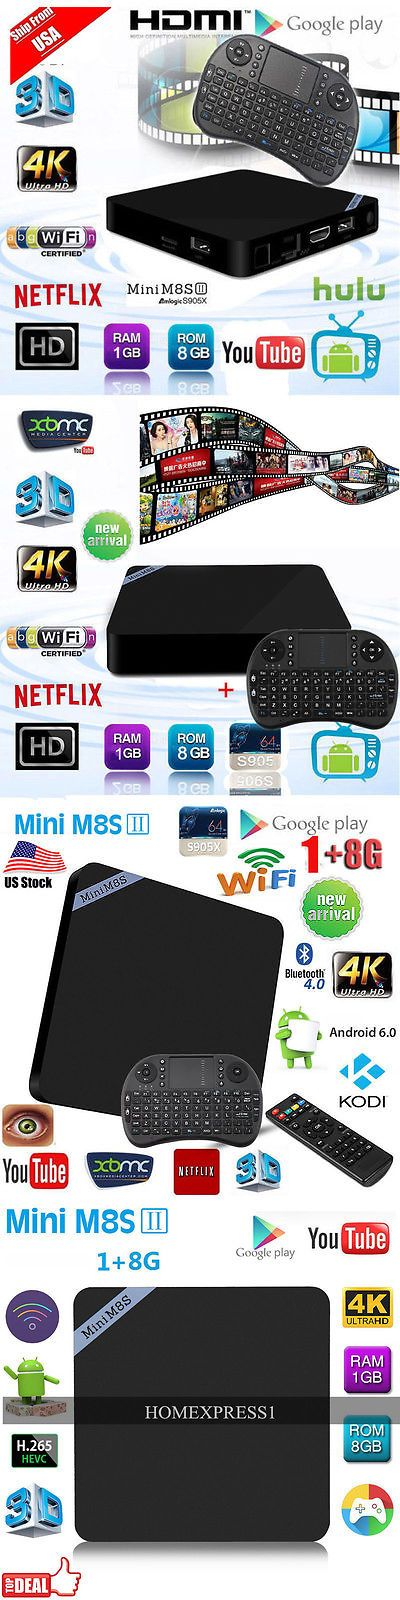 Cable TV Boxes: Mini Quad Core 1080P 4K Android Tv Box+Backlit Keyboard Black H -> BUY IT NOW ONLY: $44.95 on eBay!